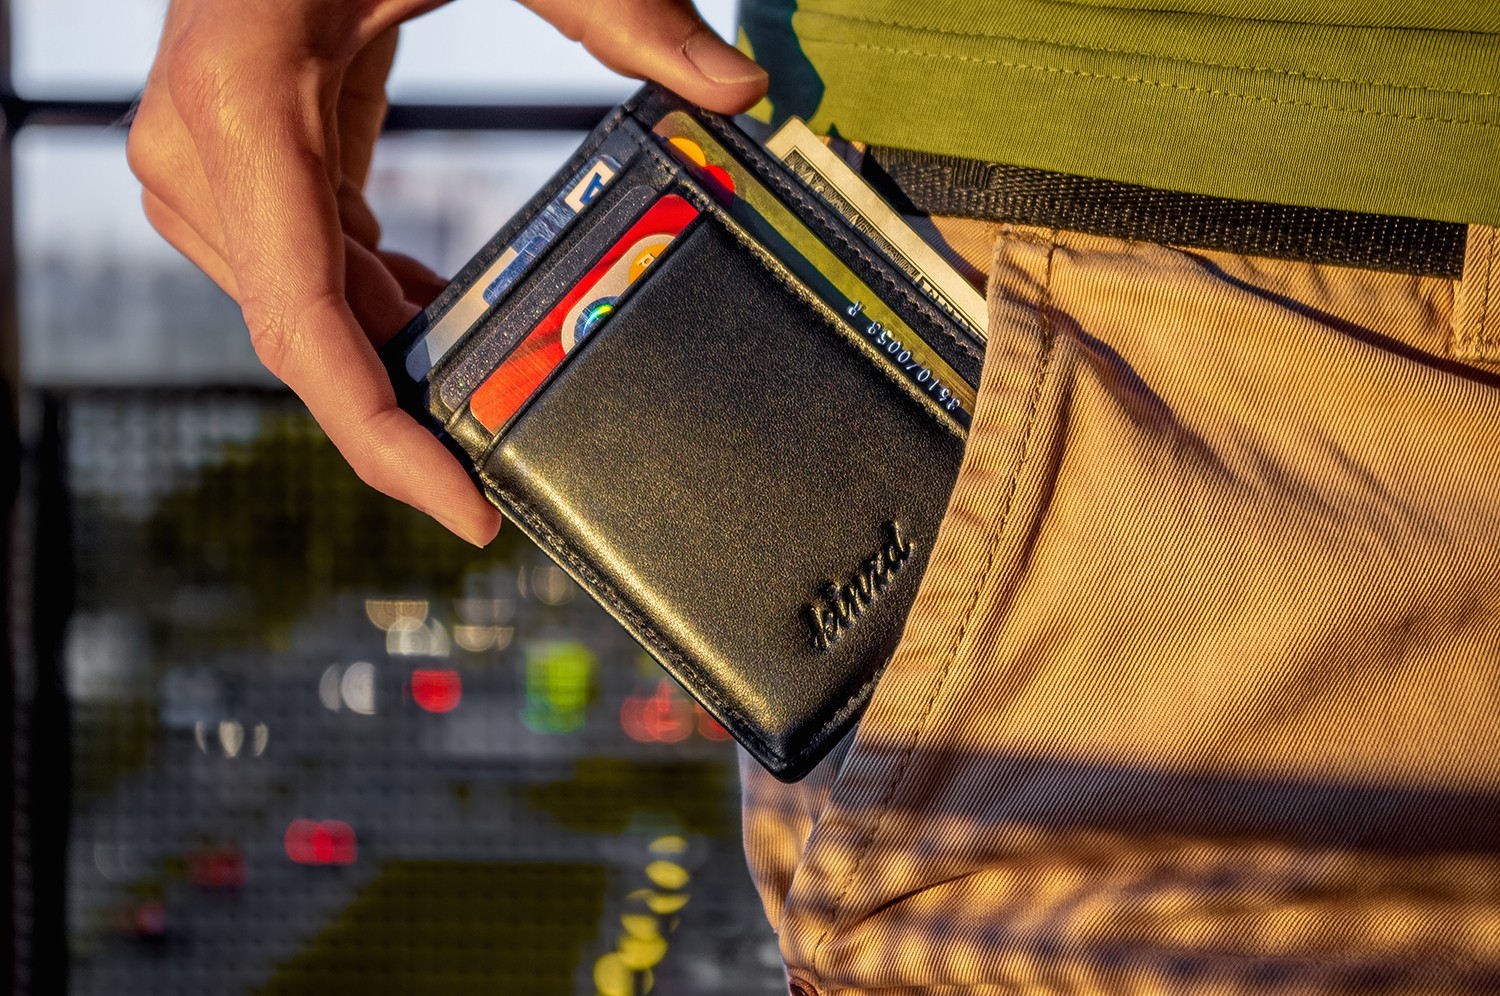 wallet. 25+ Best Brother Gift Ideas to Give on His Birthday 2020/2021